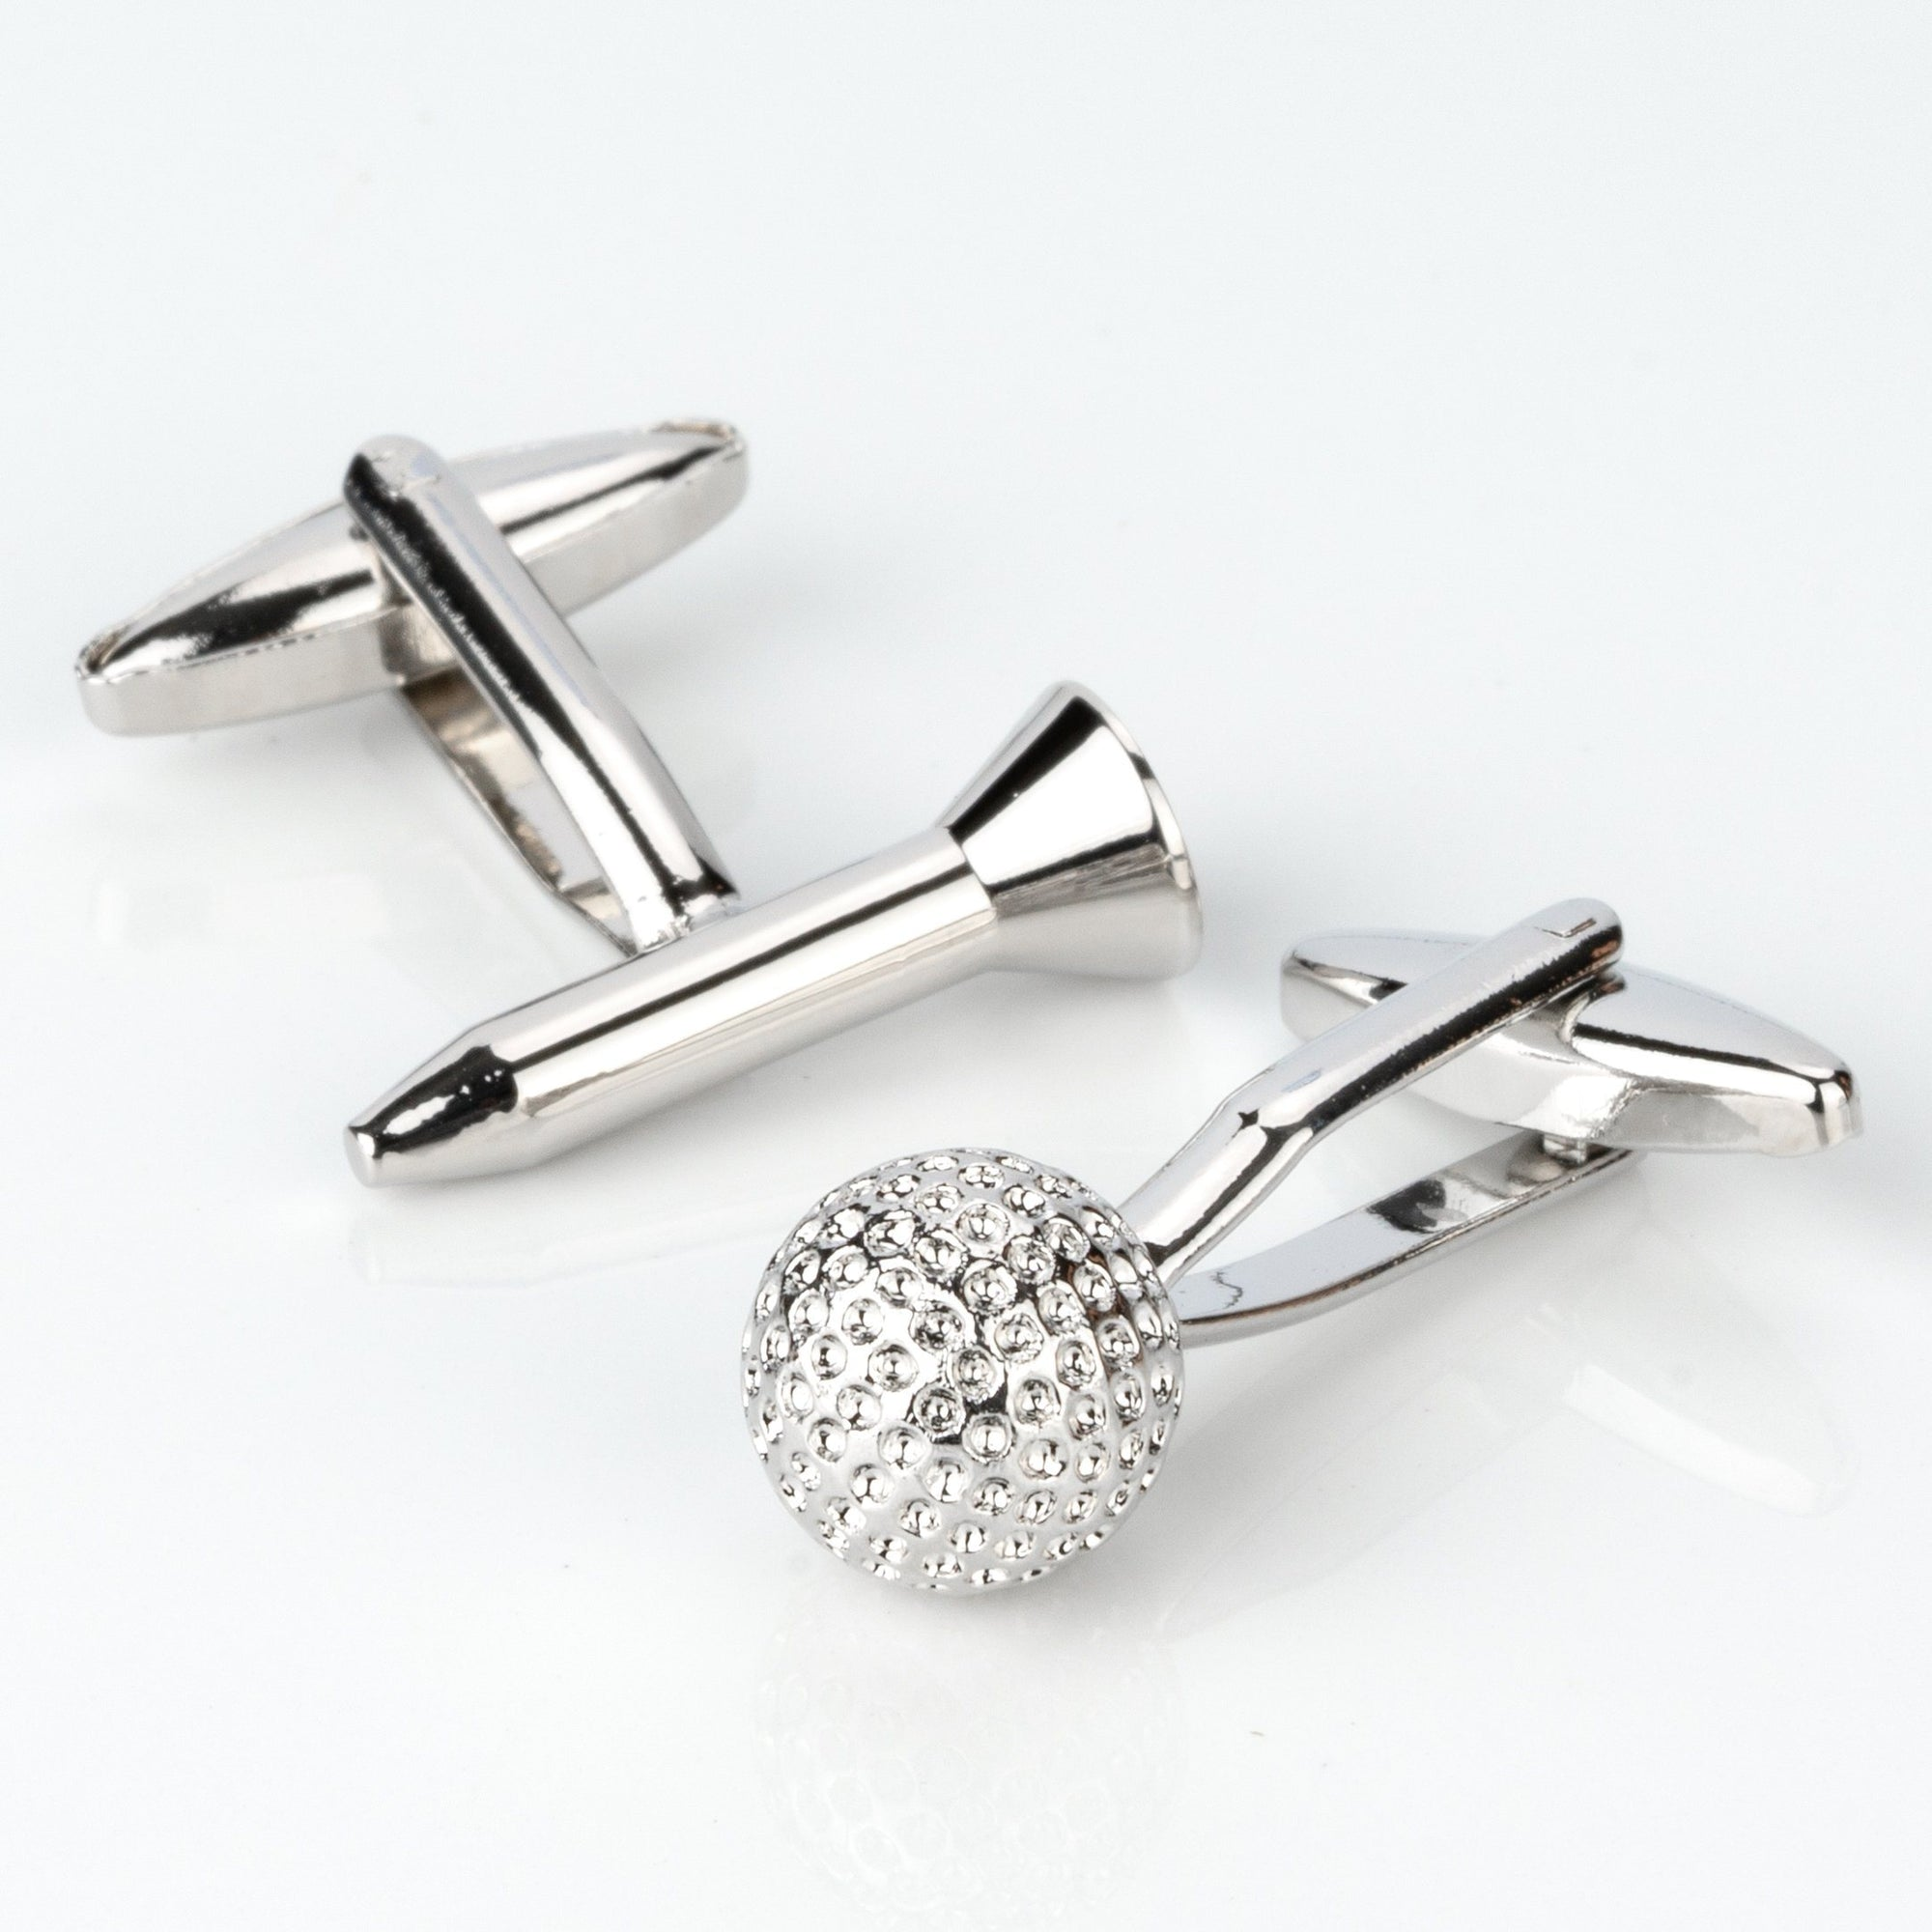 Golf Ball and Tee Silver Cufflinks, Novelty Cufflinks, Cuffed.com.au, CL4200, Silver, Sports, Clinks Australia